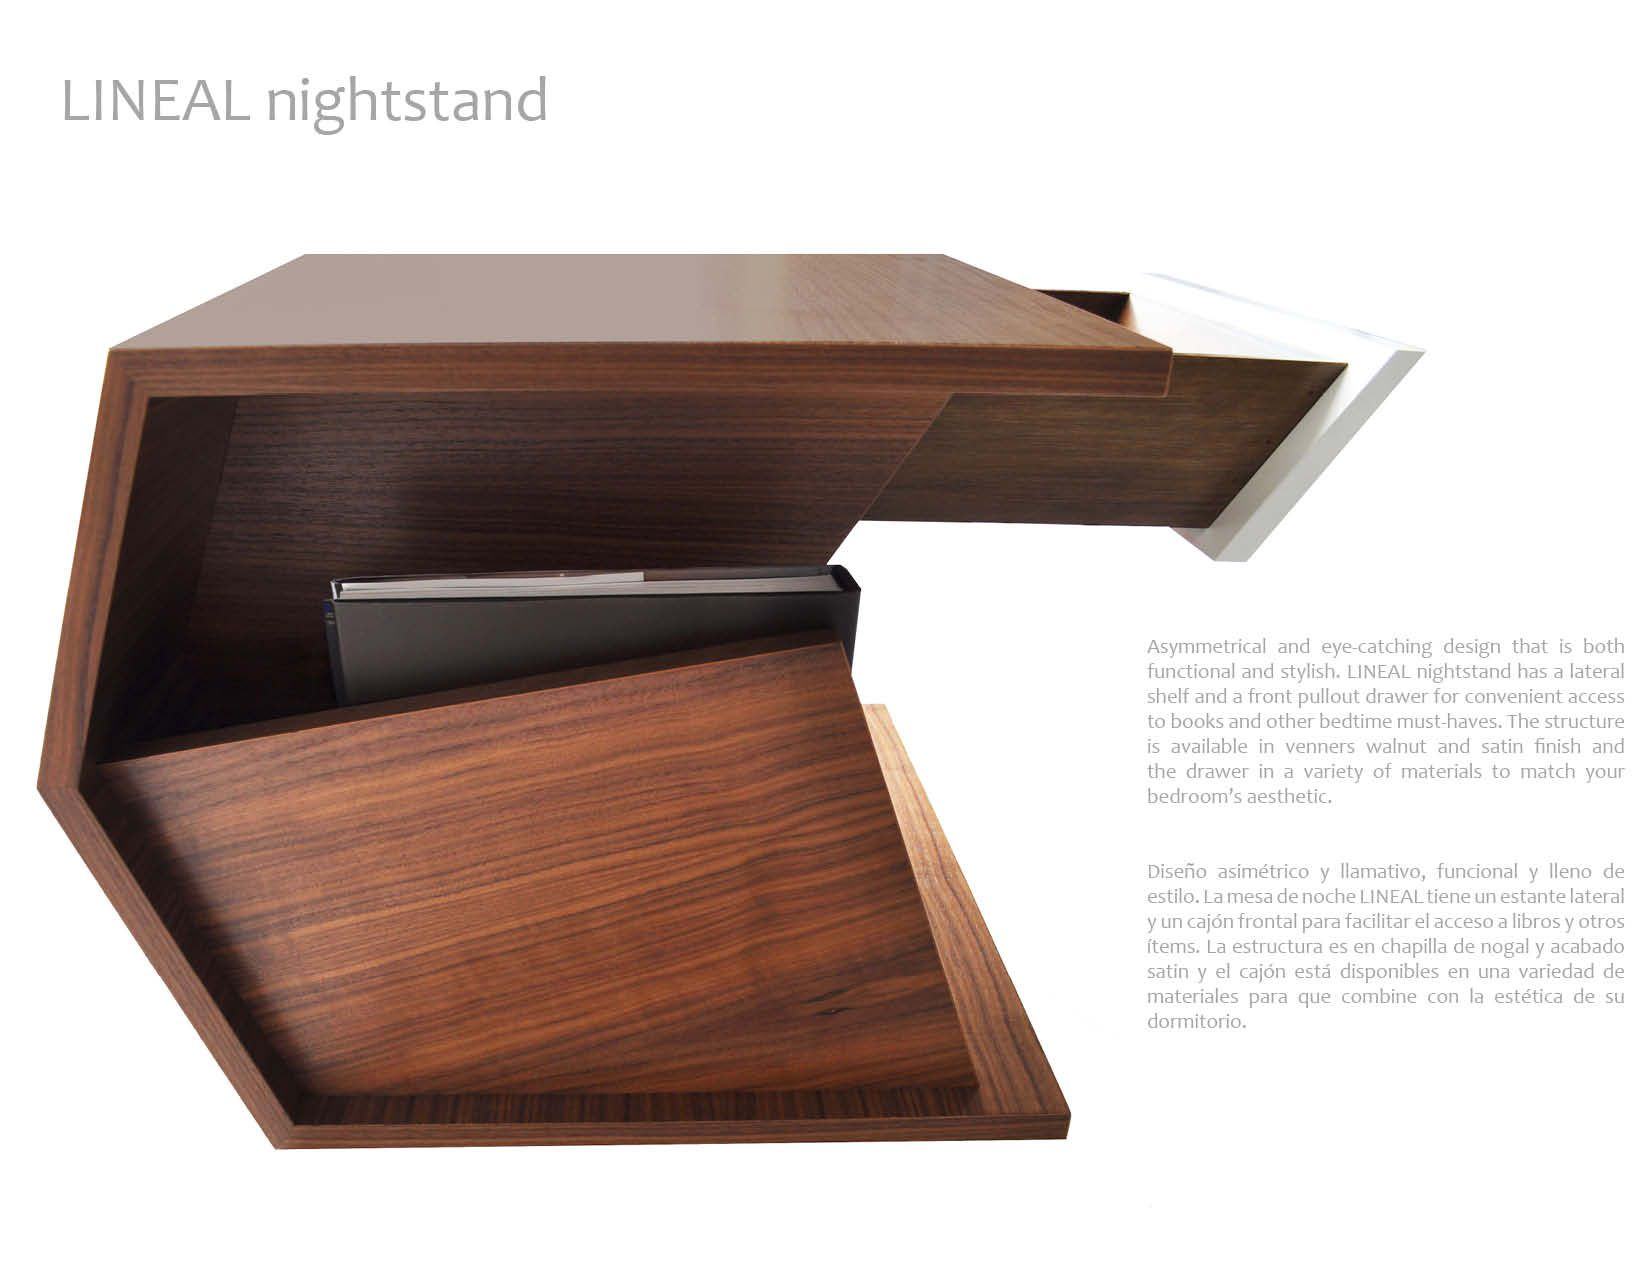 Lineal Nightstand Has A Lateral Shelf And A Front Pullout